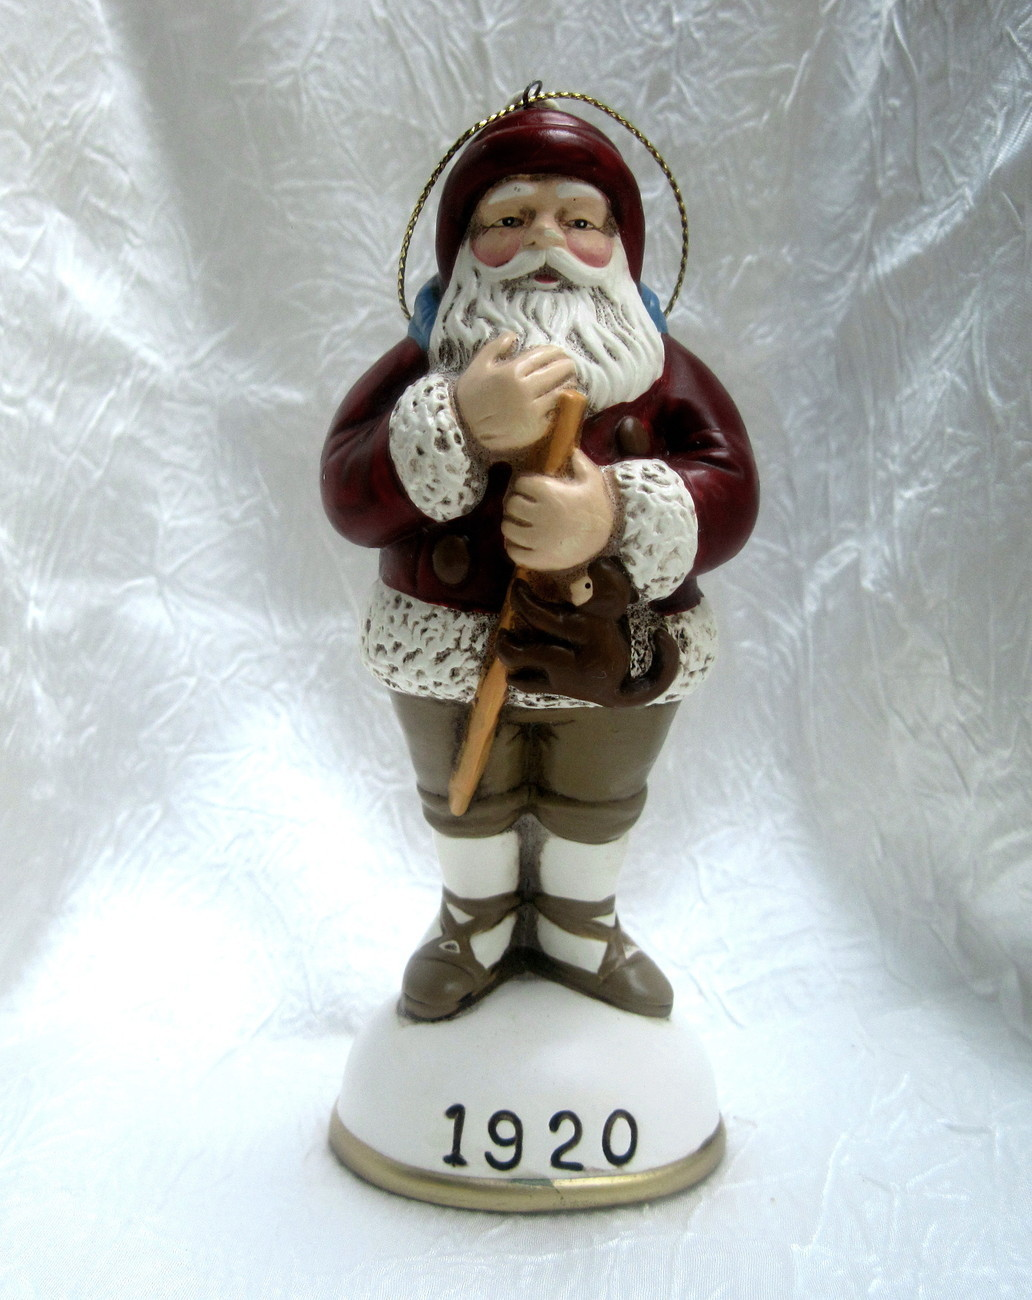 Christmas Reproductions Santa Claus Figurine Ornament 1920